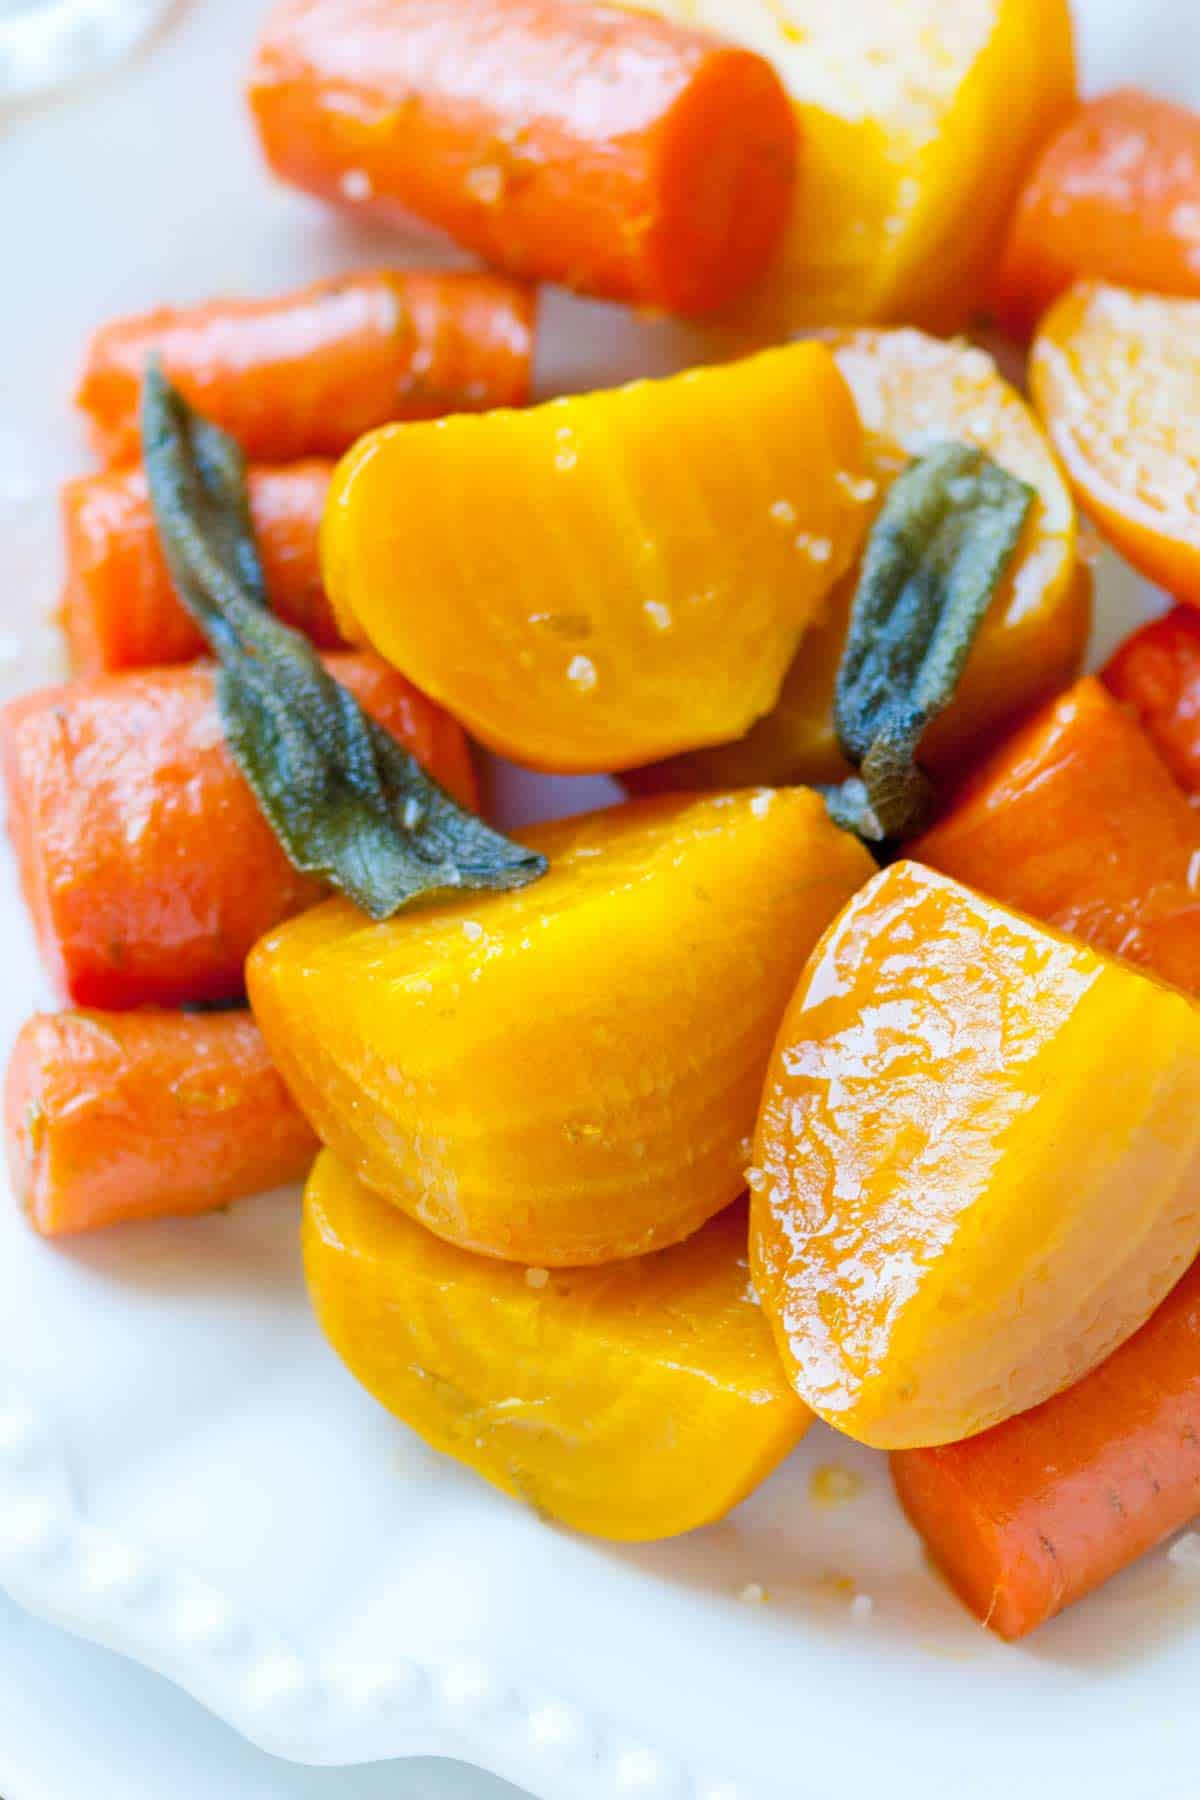 How to Roast Beets and Carrots with Sage